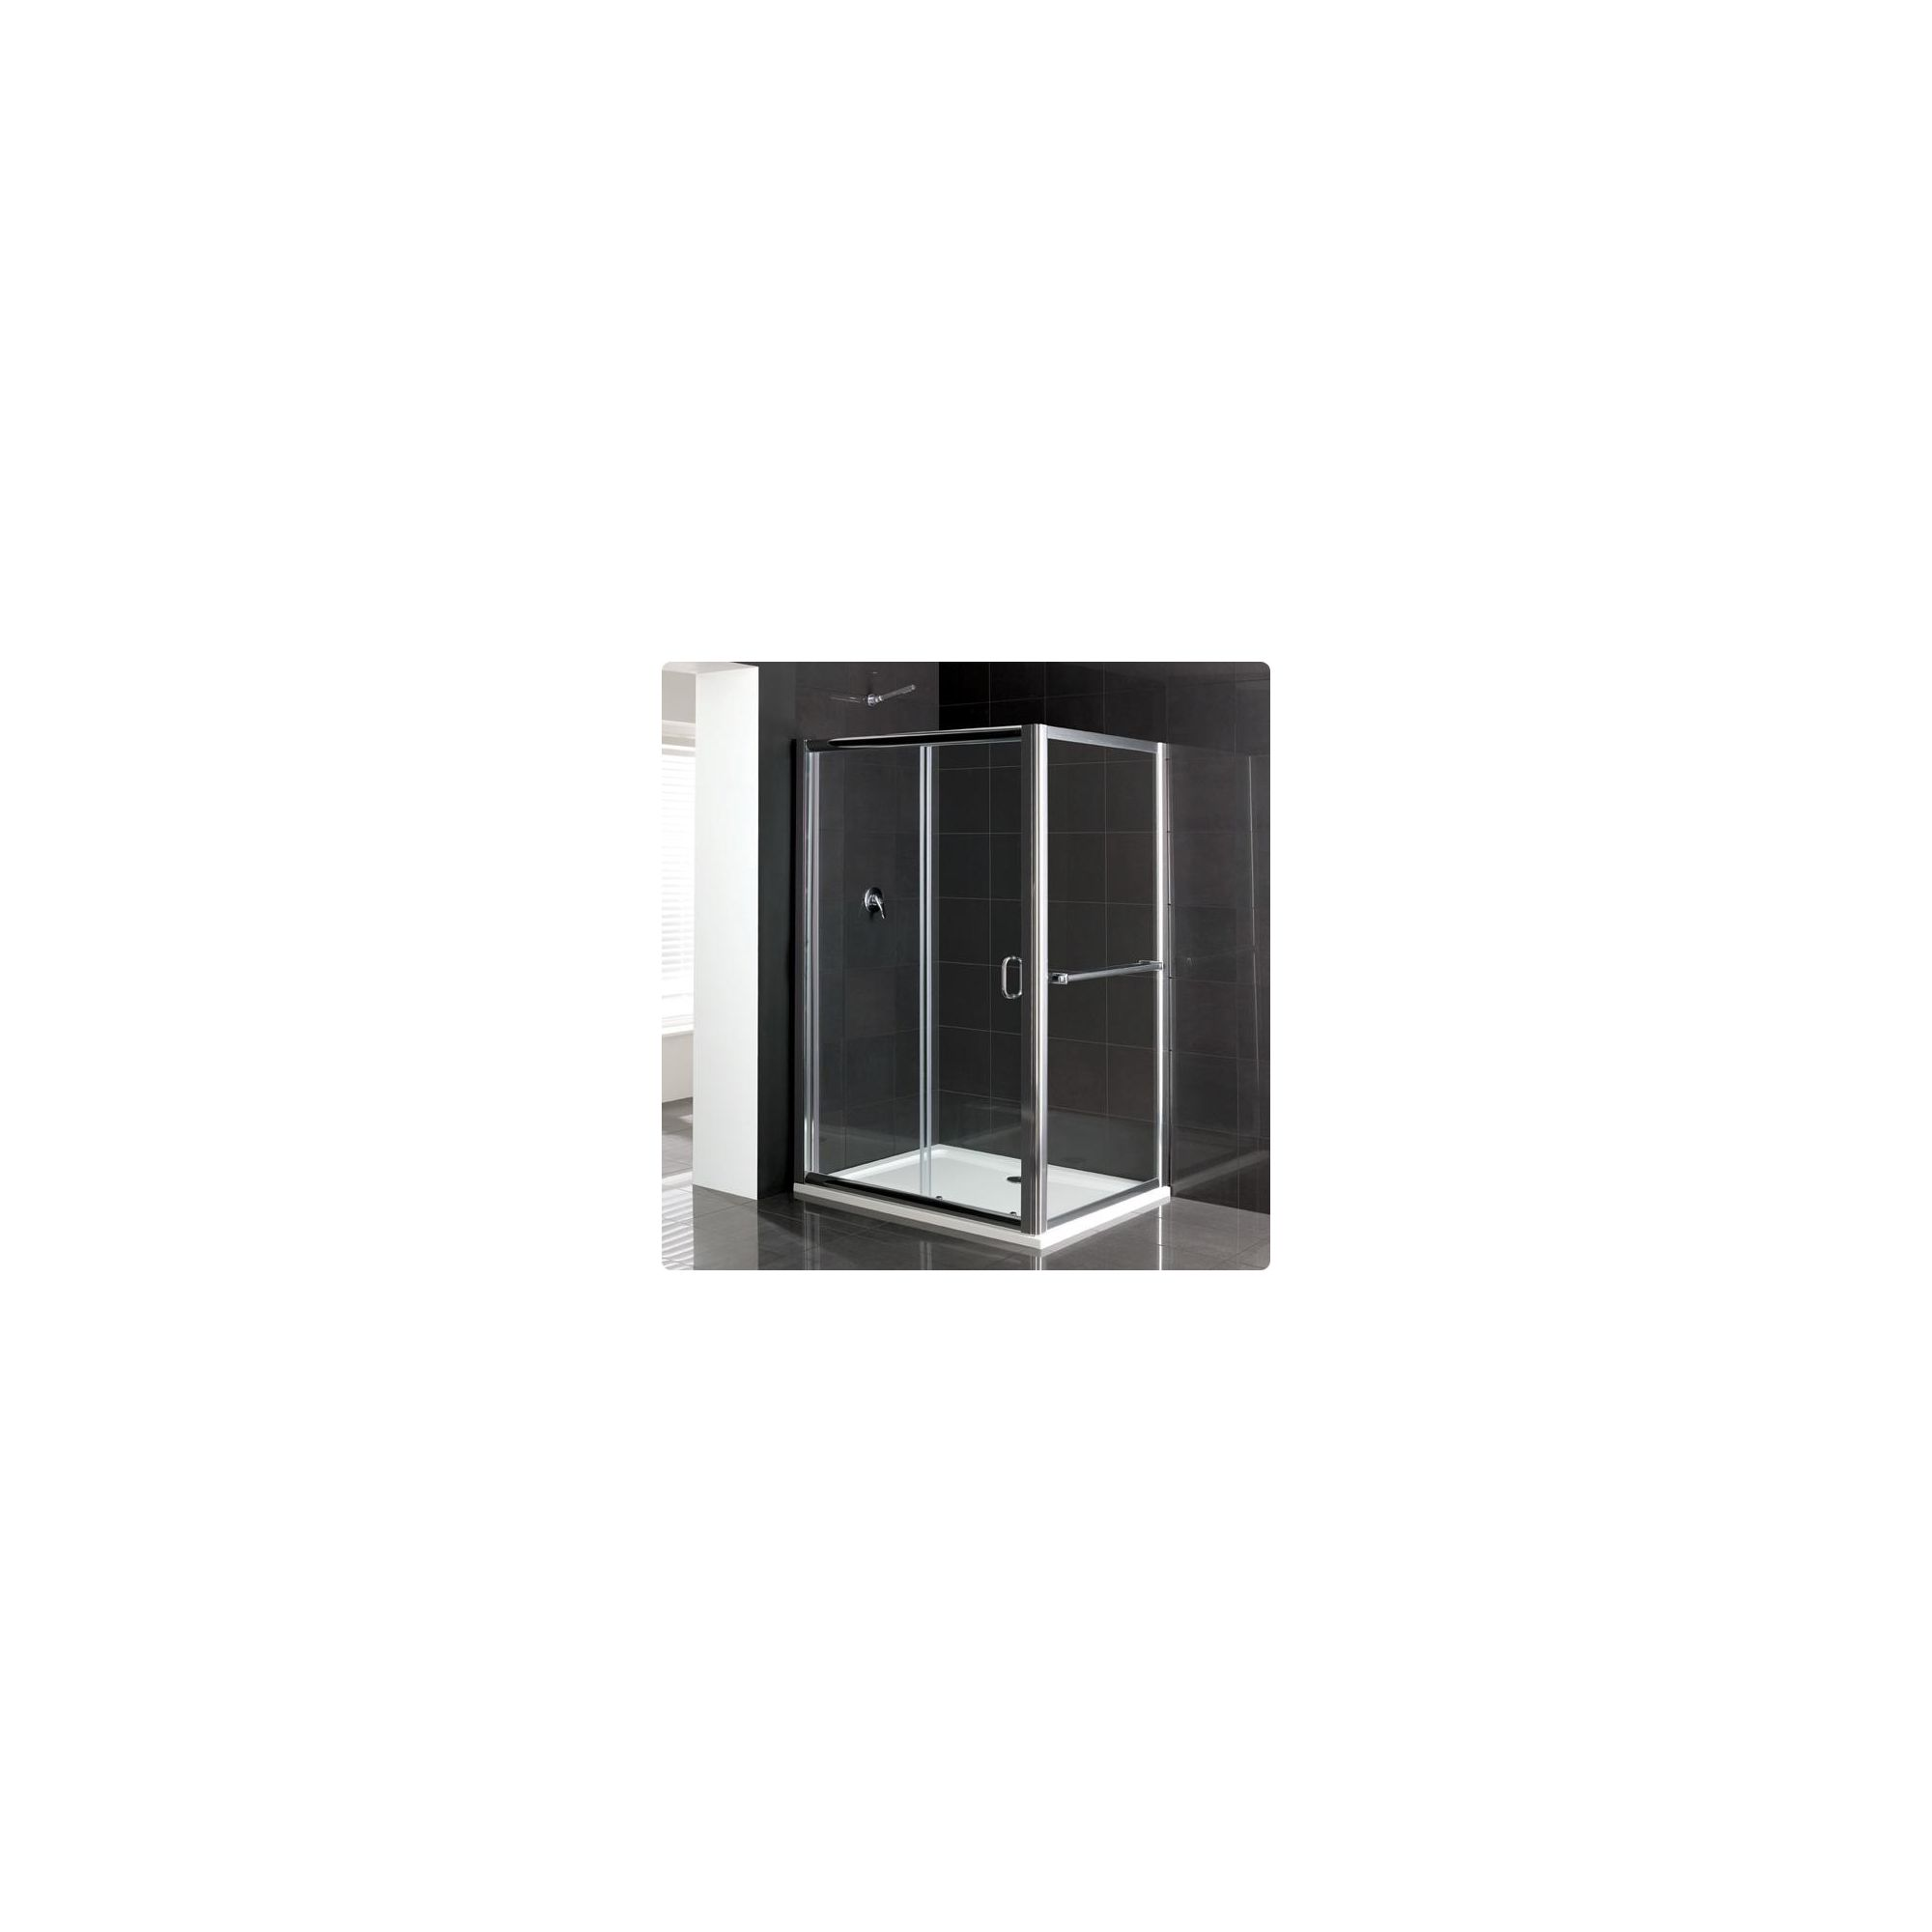 Duchy Elite Silver Sliding Door Shower Enclosure, 1200mm x 700mm, Standard Tray, 6mm Glass at Tesco Direct